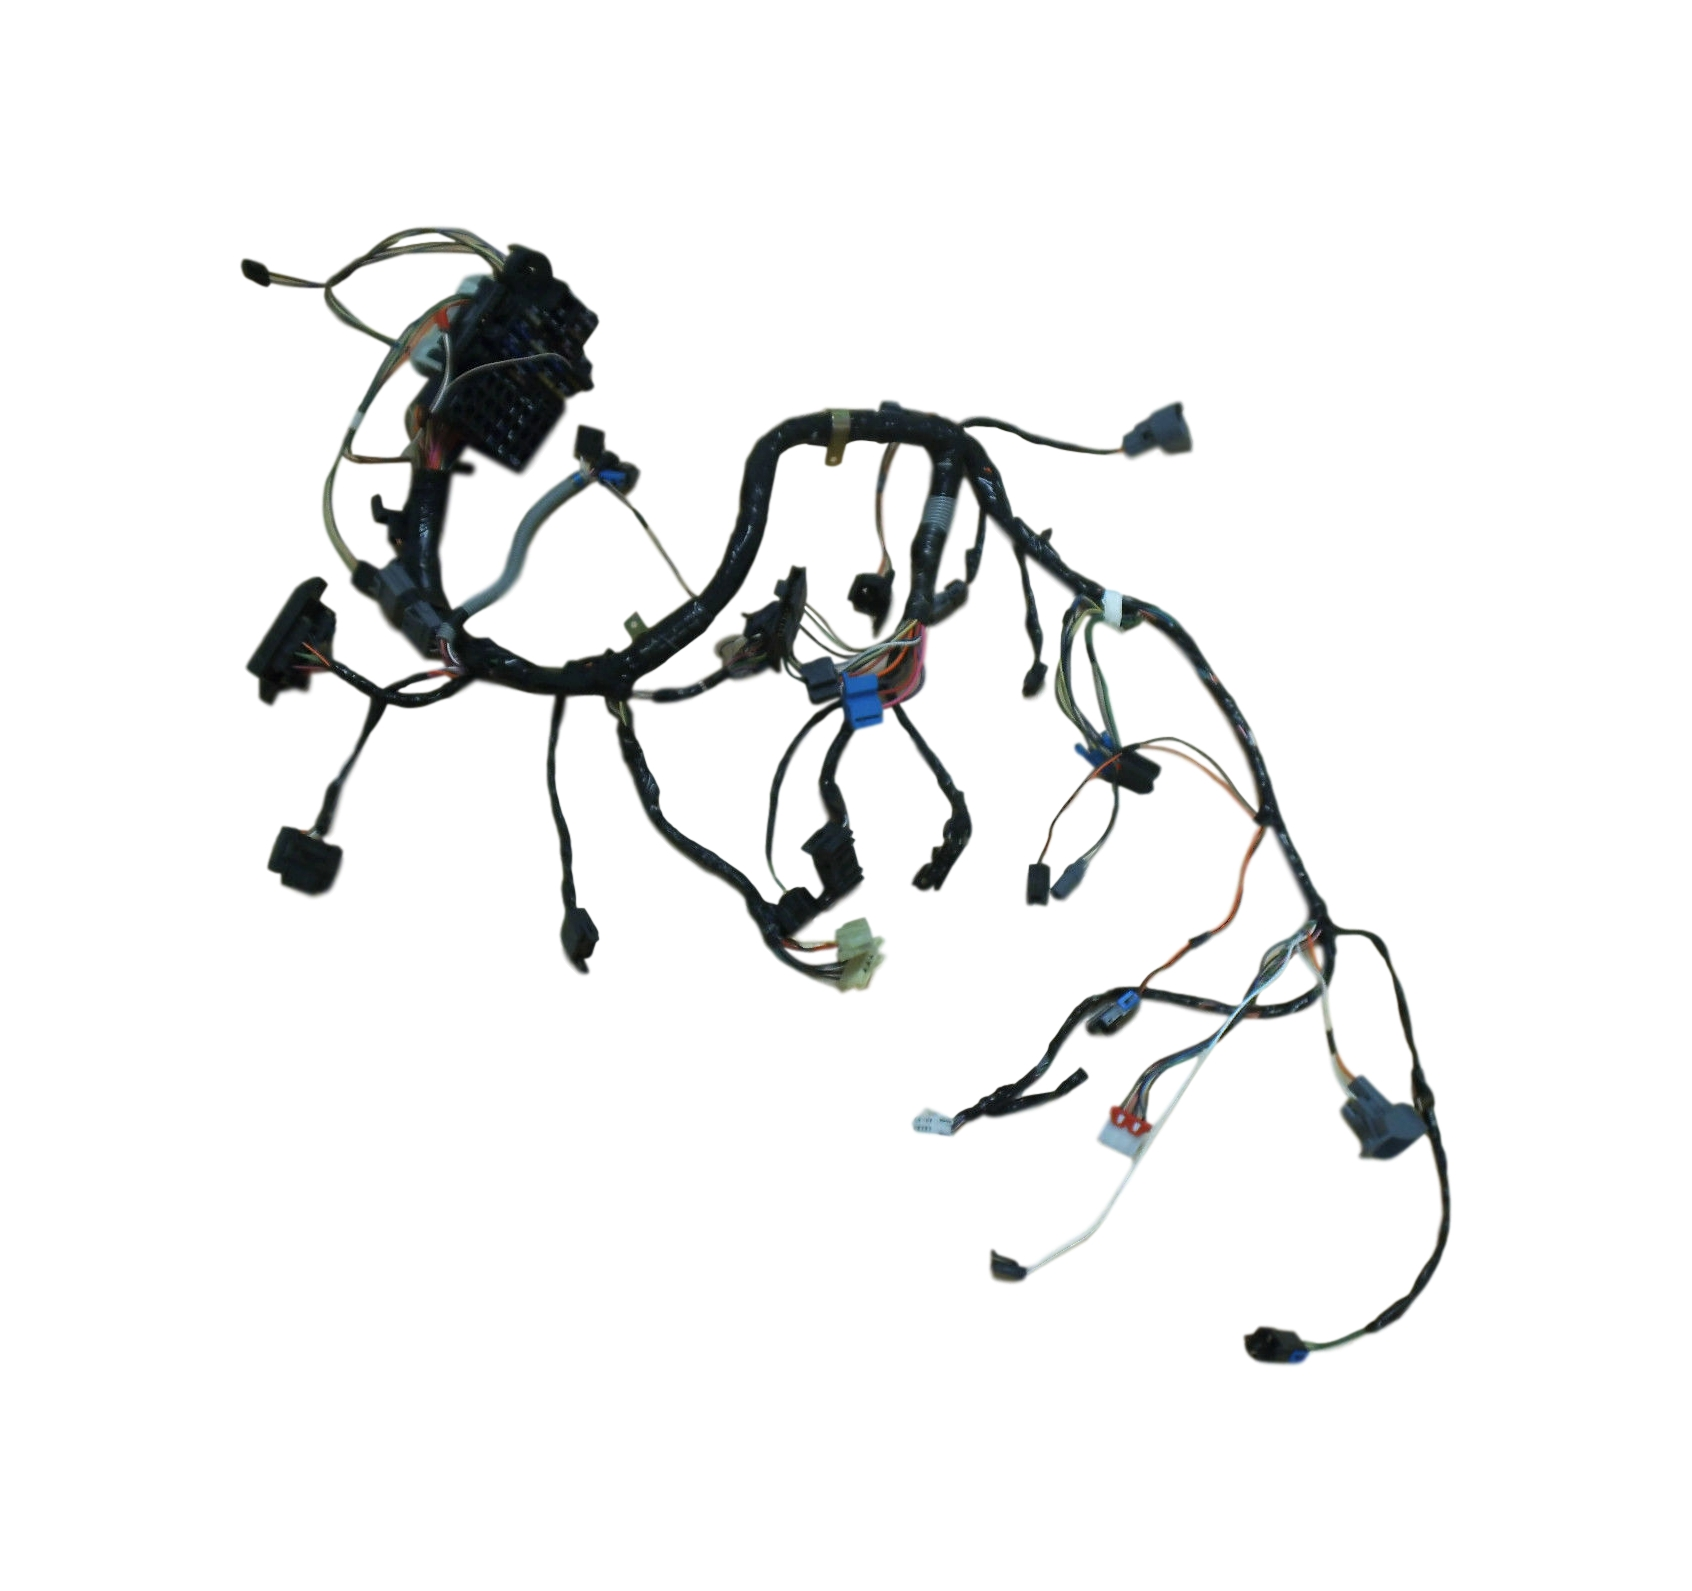 delco gm complete wiring harness assembly 1 12126266 12126266 c-402 gr 2 480